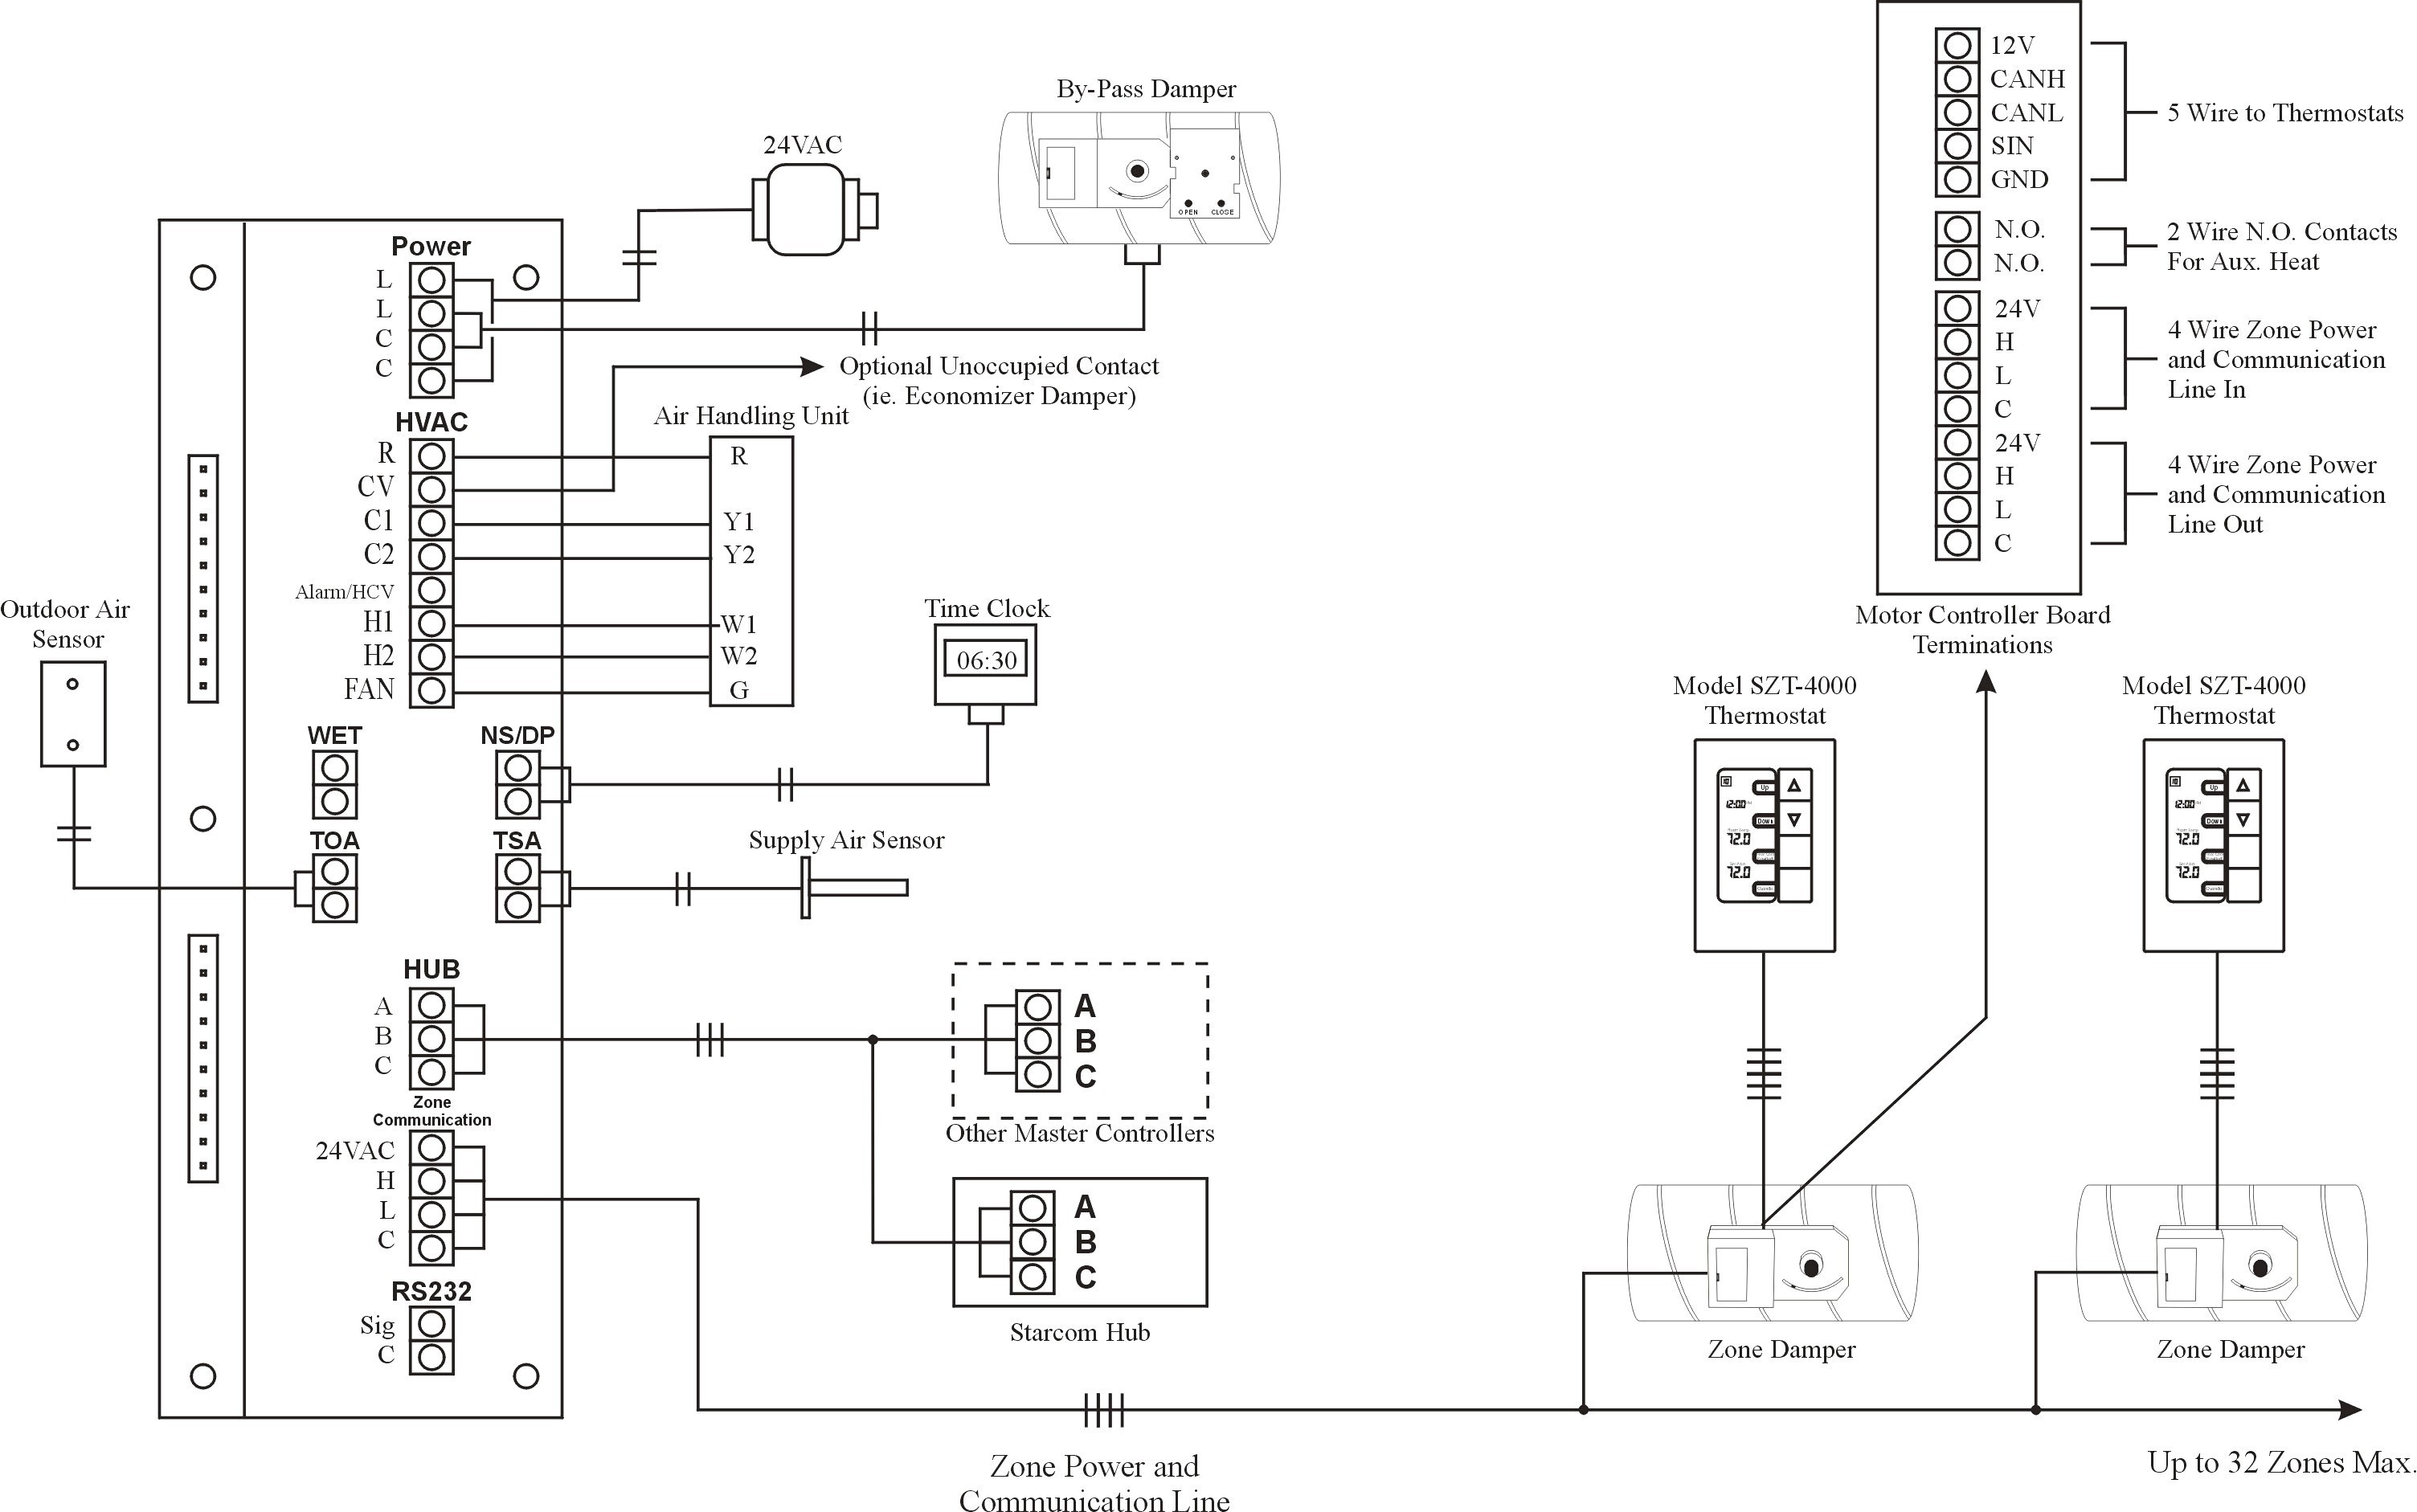 System Sensor Duct Detector Wiring Diagram Awesome